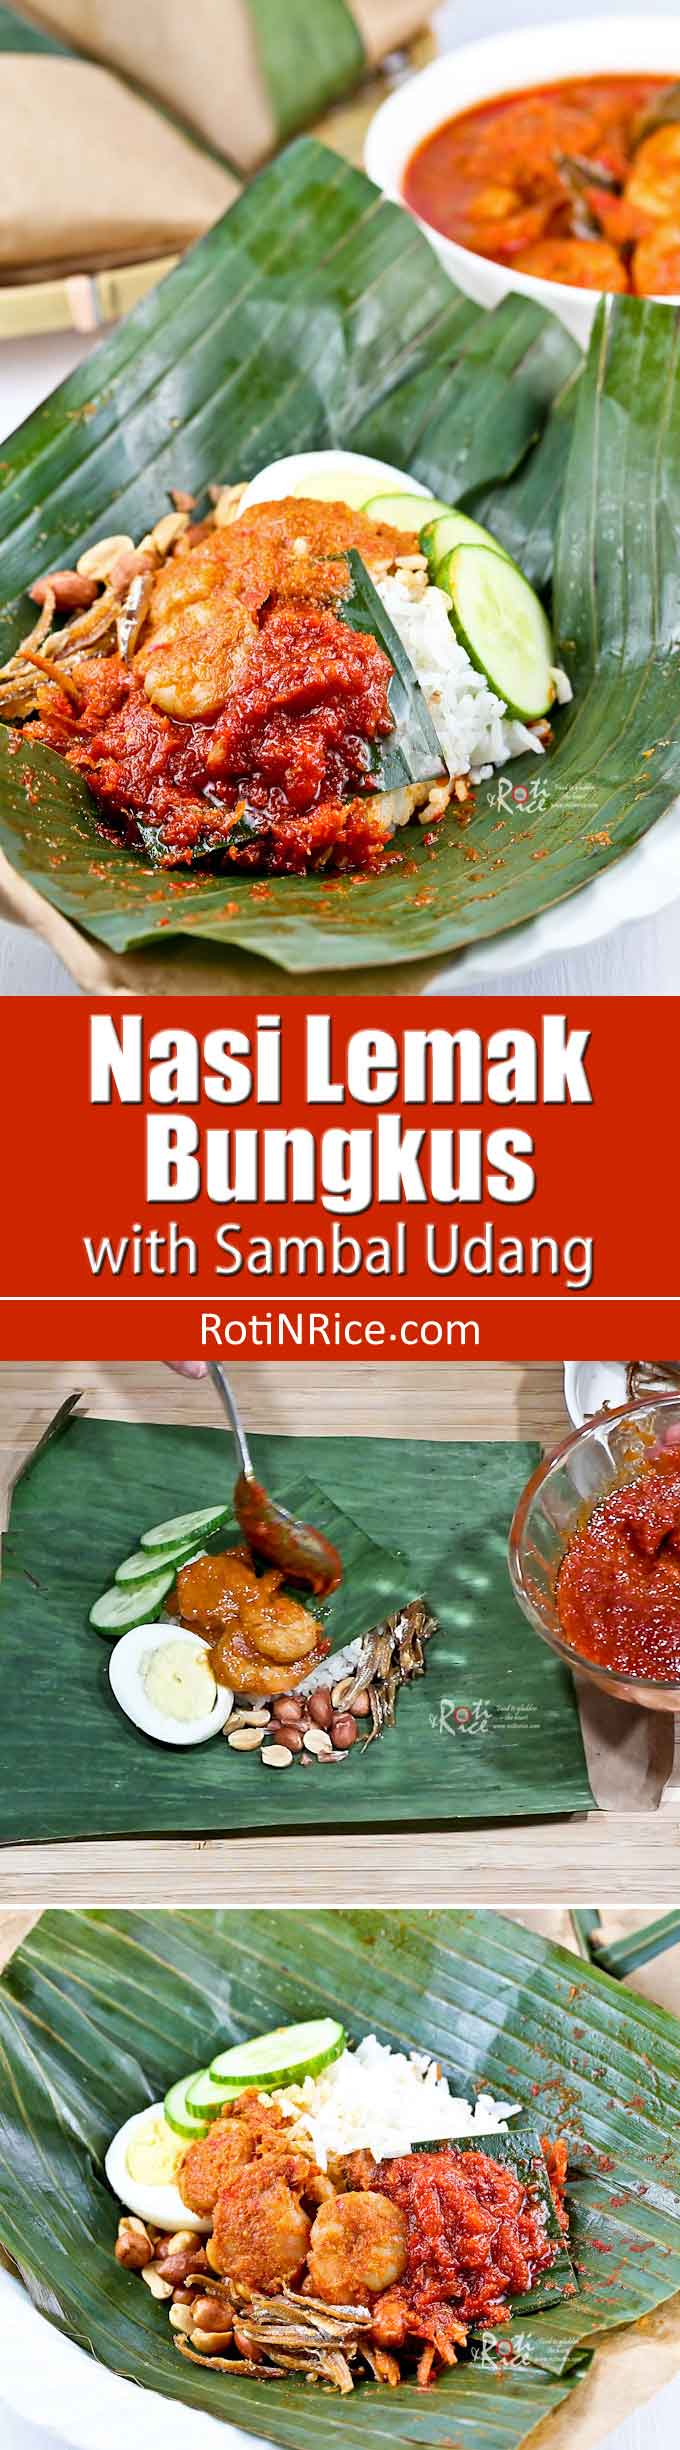 Nasi Lemak Bungkus, Malaysia's most popular breakfast now with sambal udang (prawn sambal). It is a gastronomical delight you don't want to miss. | MalaysianChineseKitchen.com